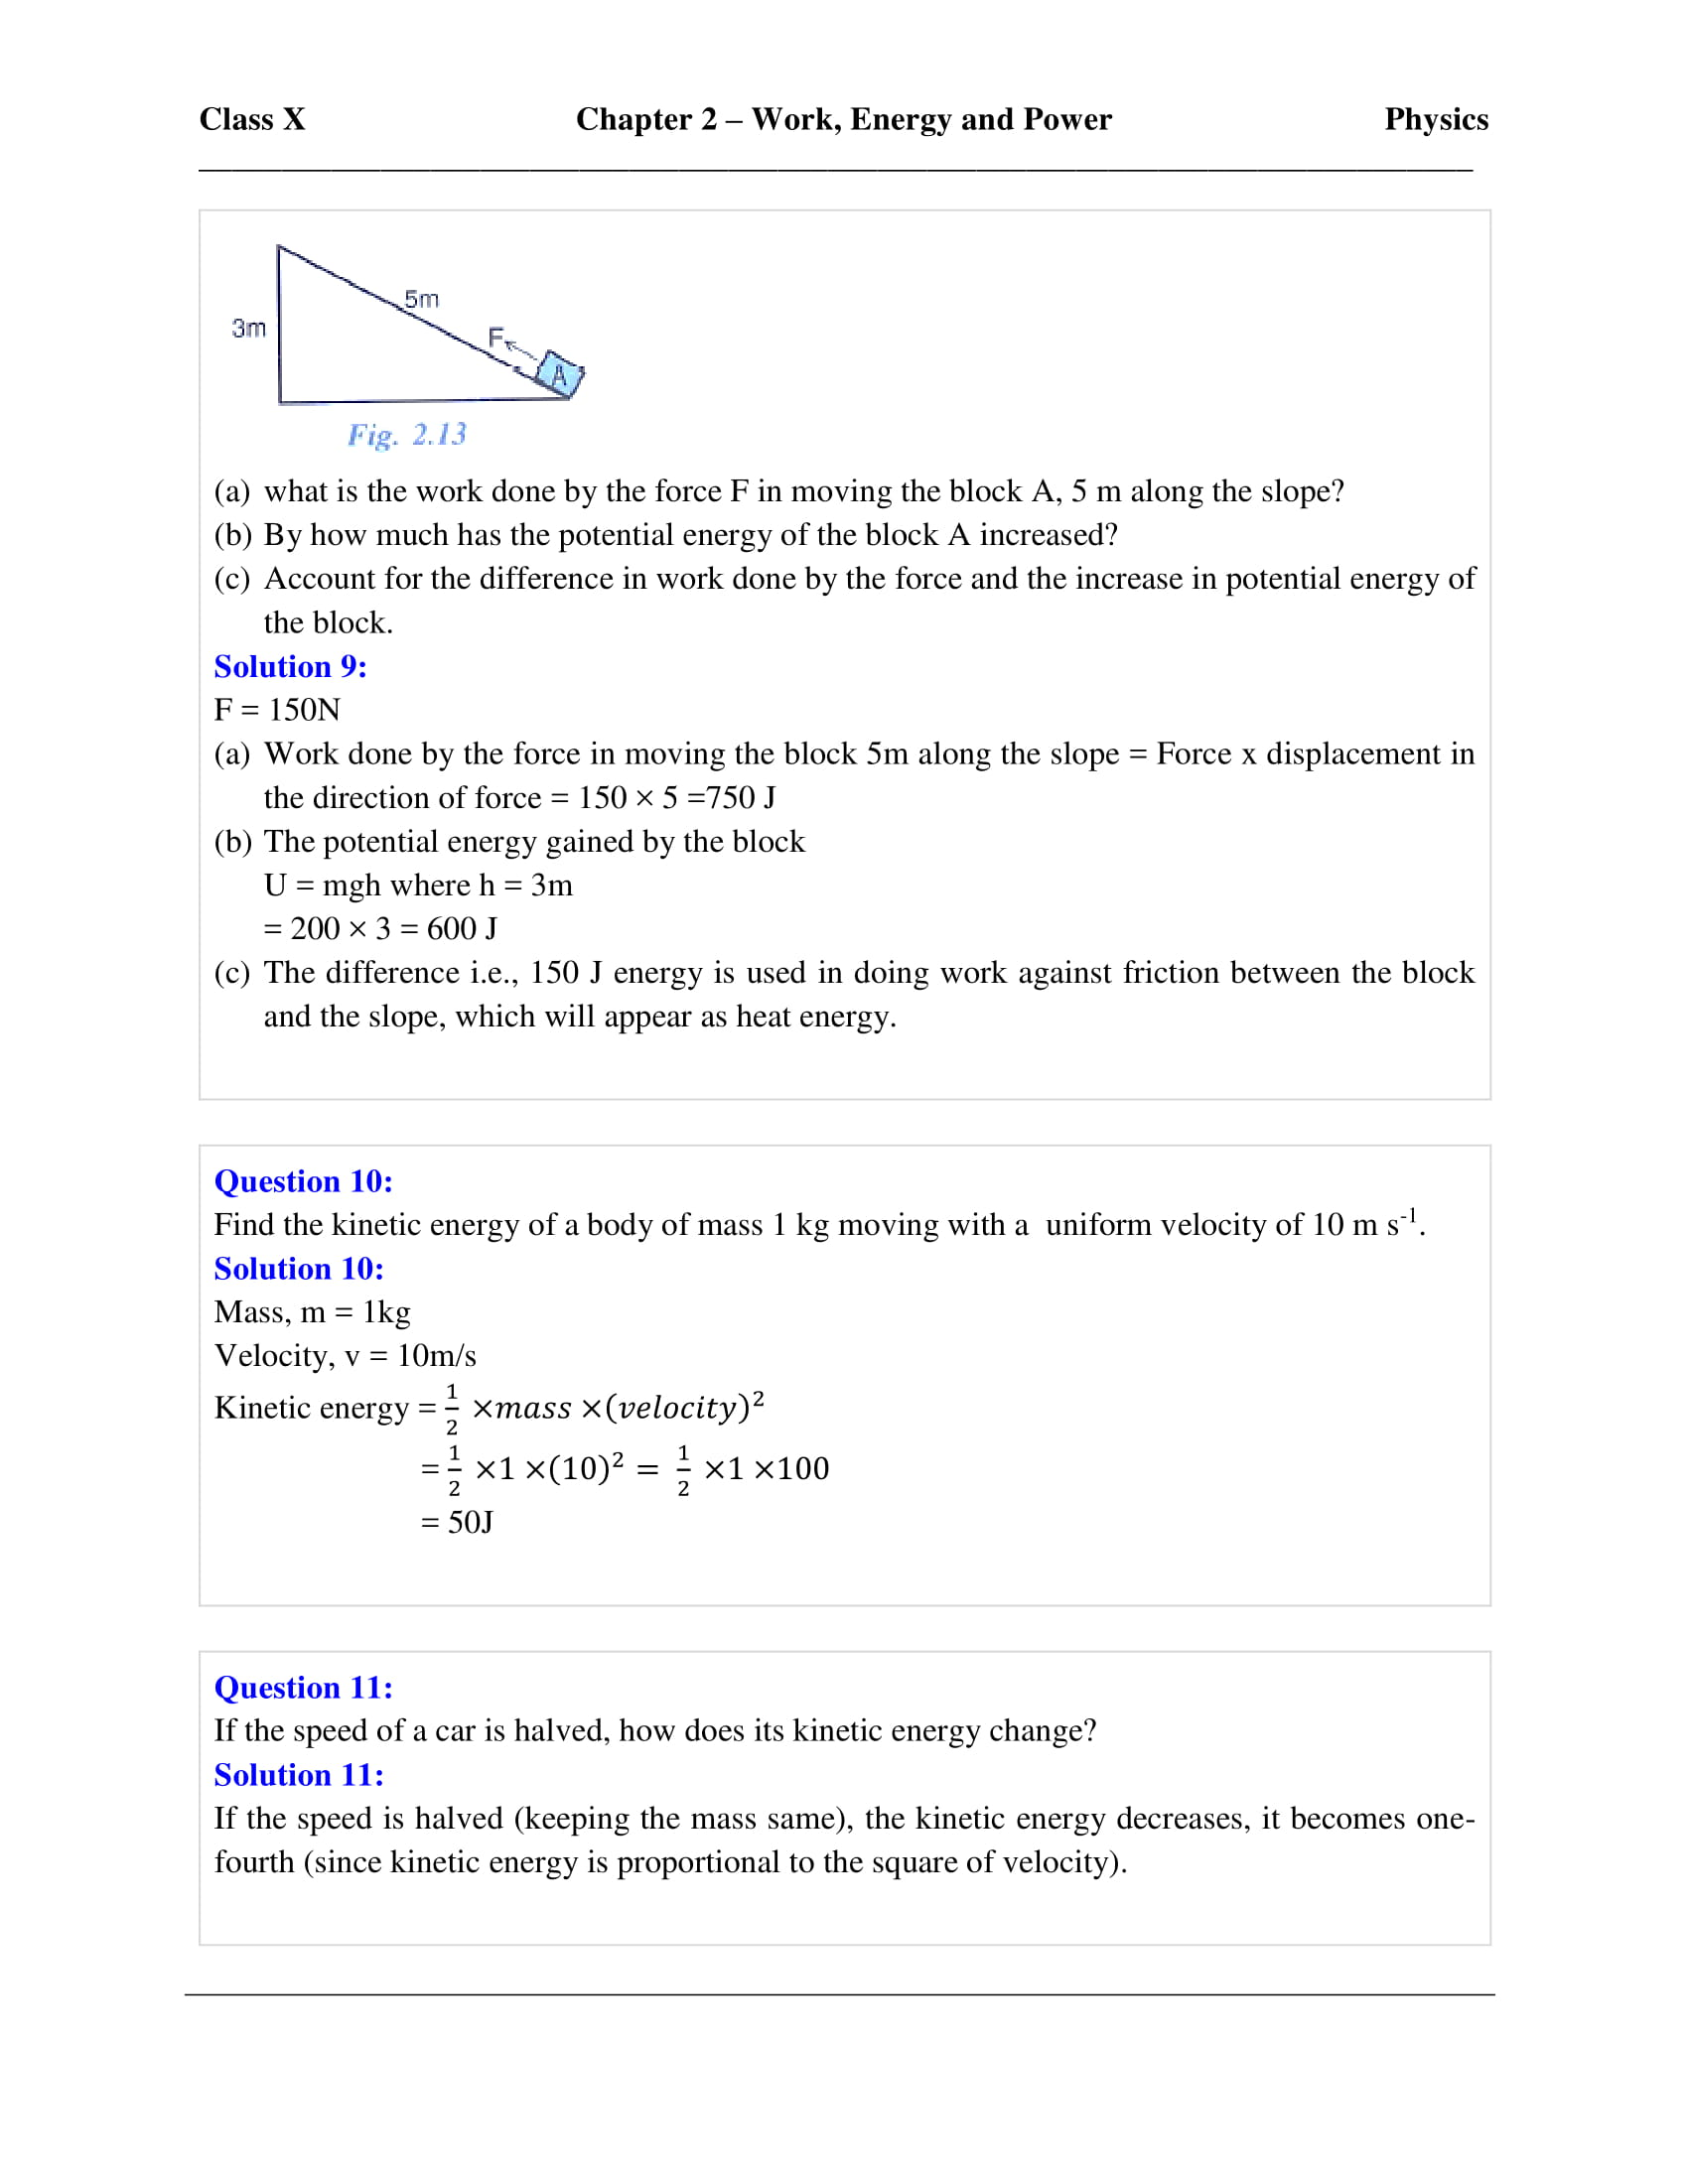 icse-selina-physics-solutions-class-10-chapter-2-work-energy-and-power-27